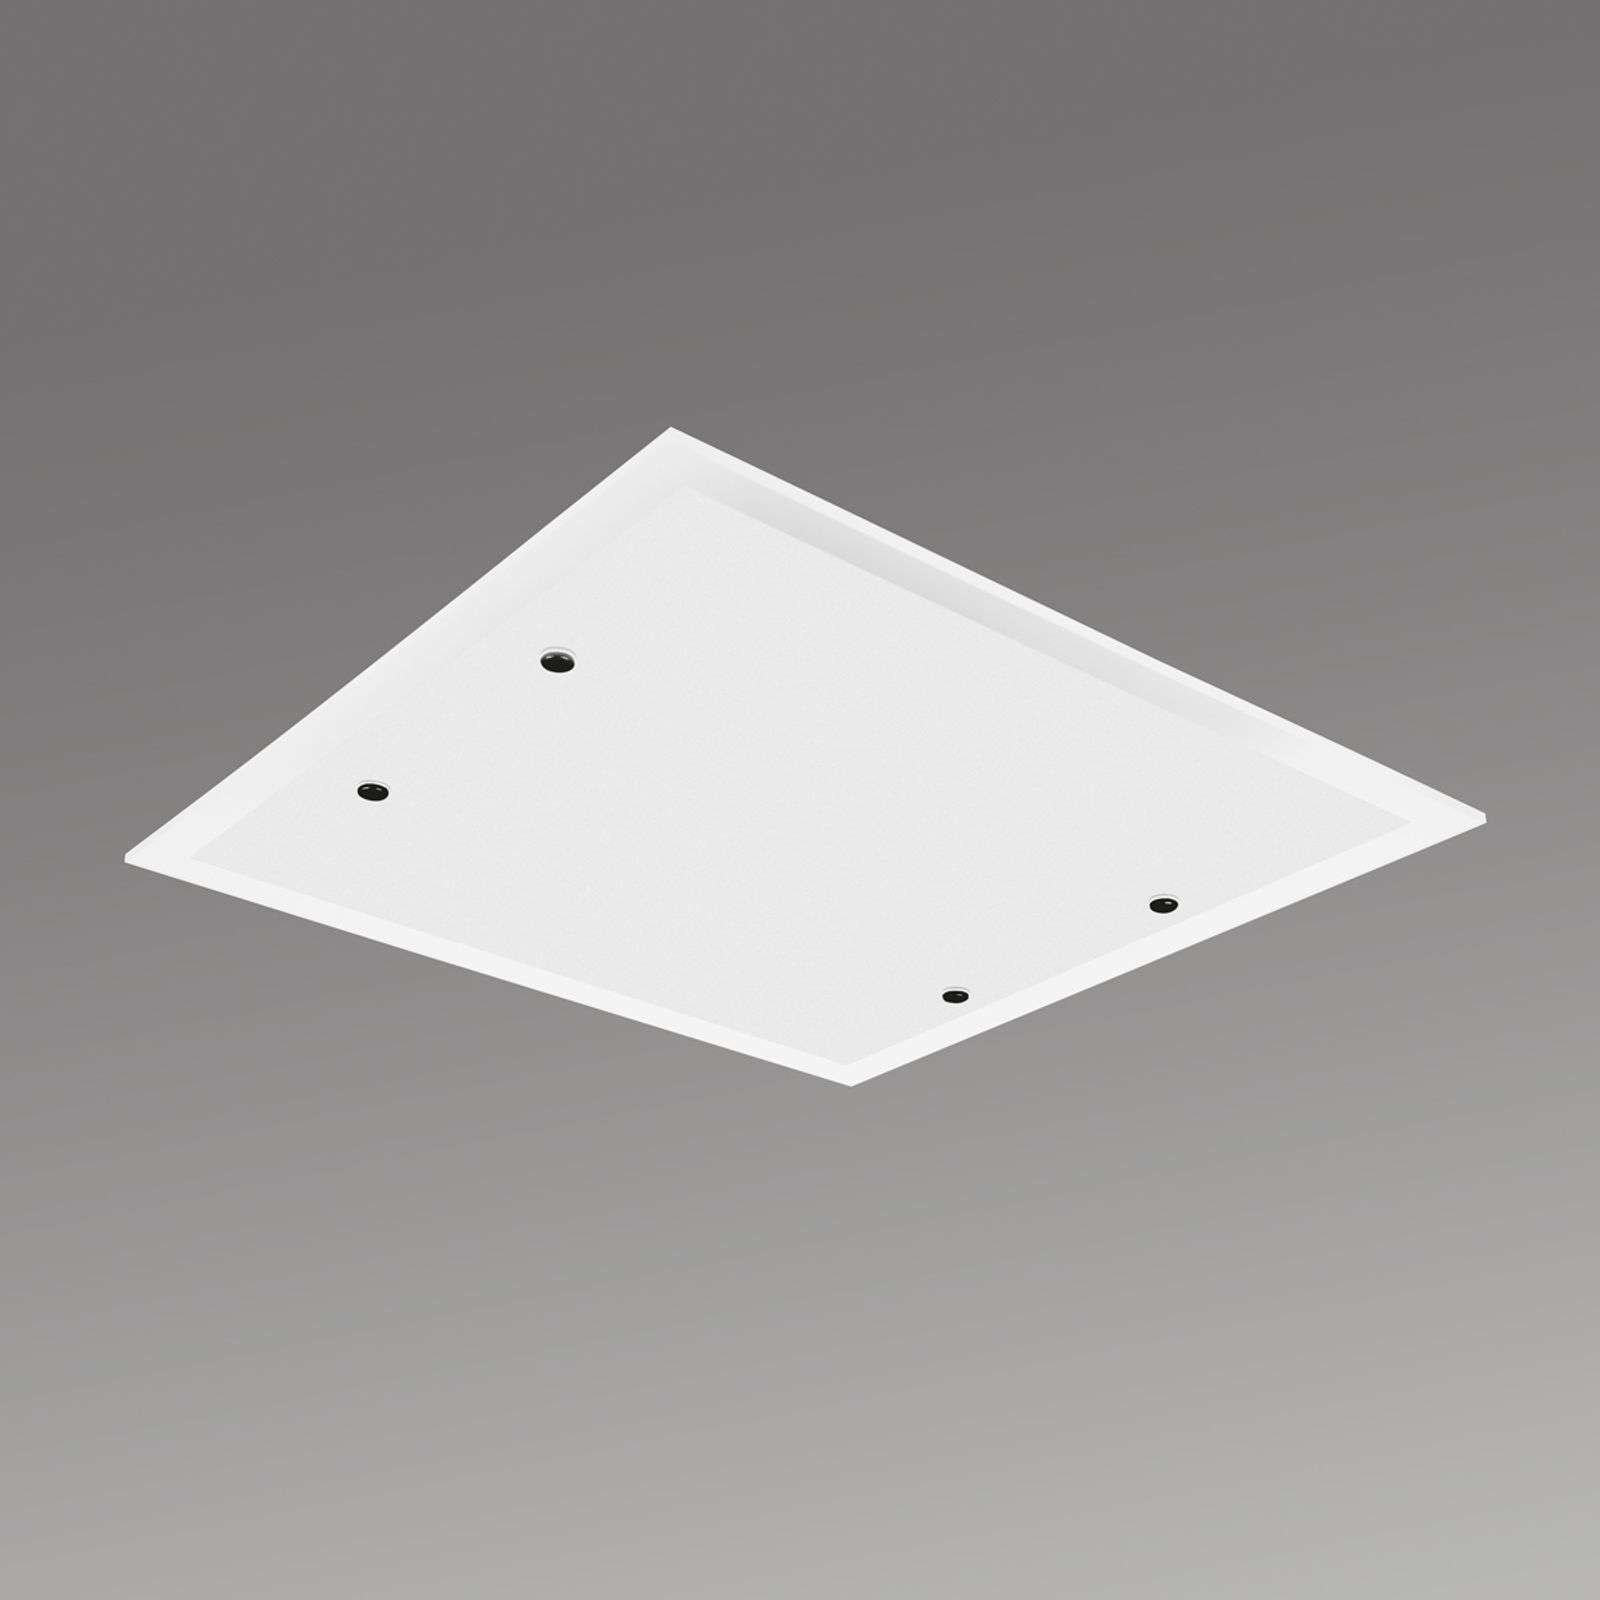 Plafonnier LED carré Area 30 cm, blanc neutre